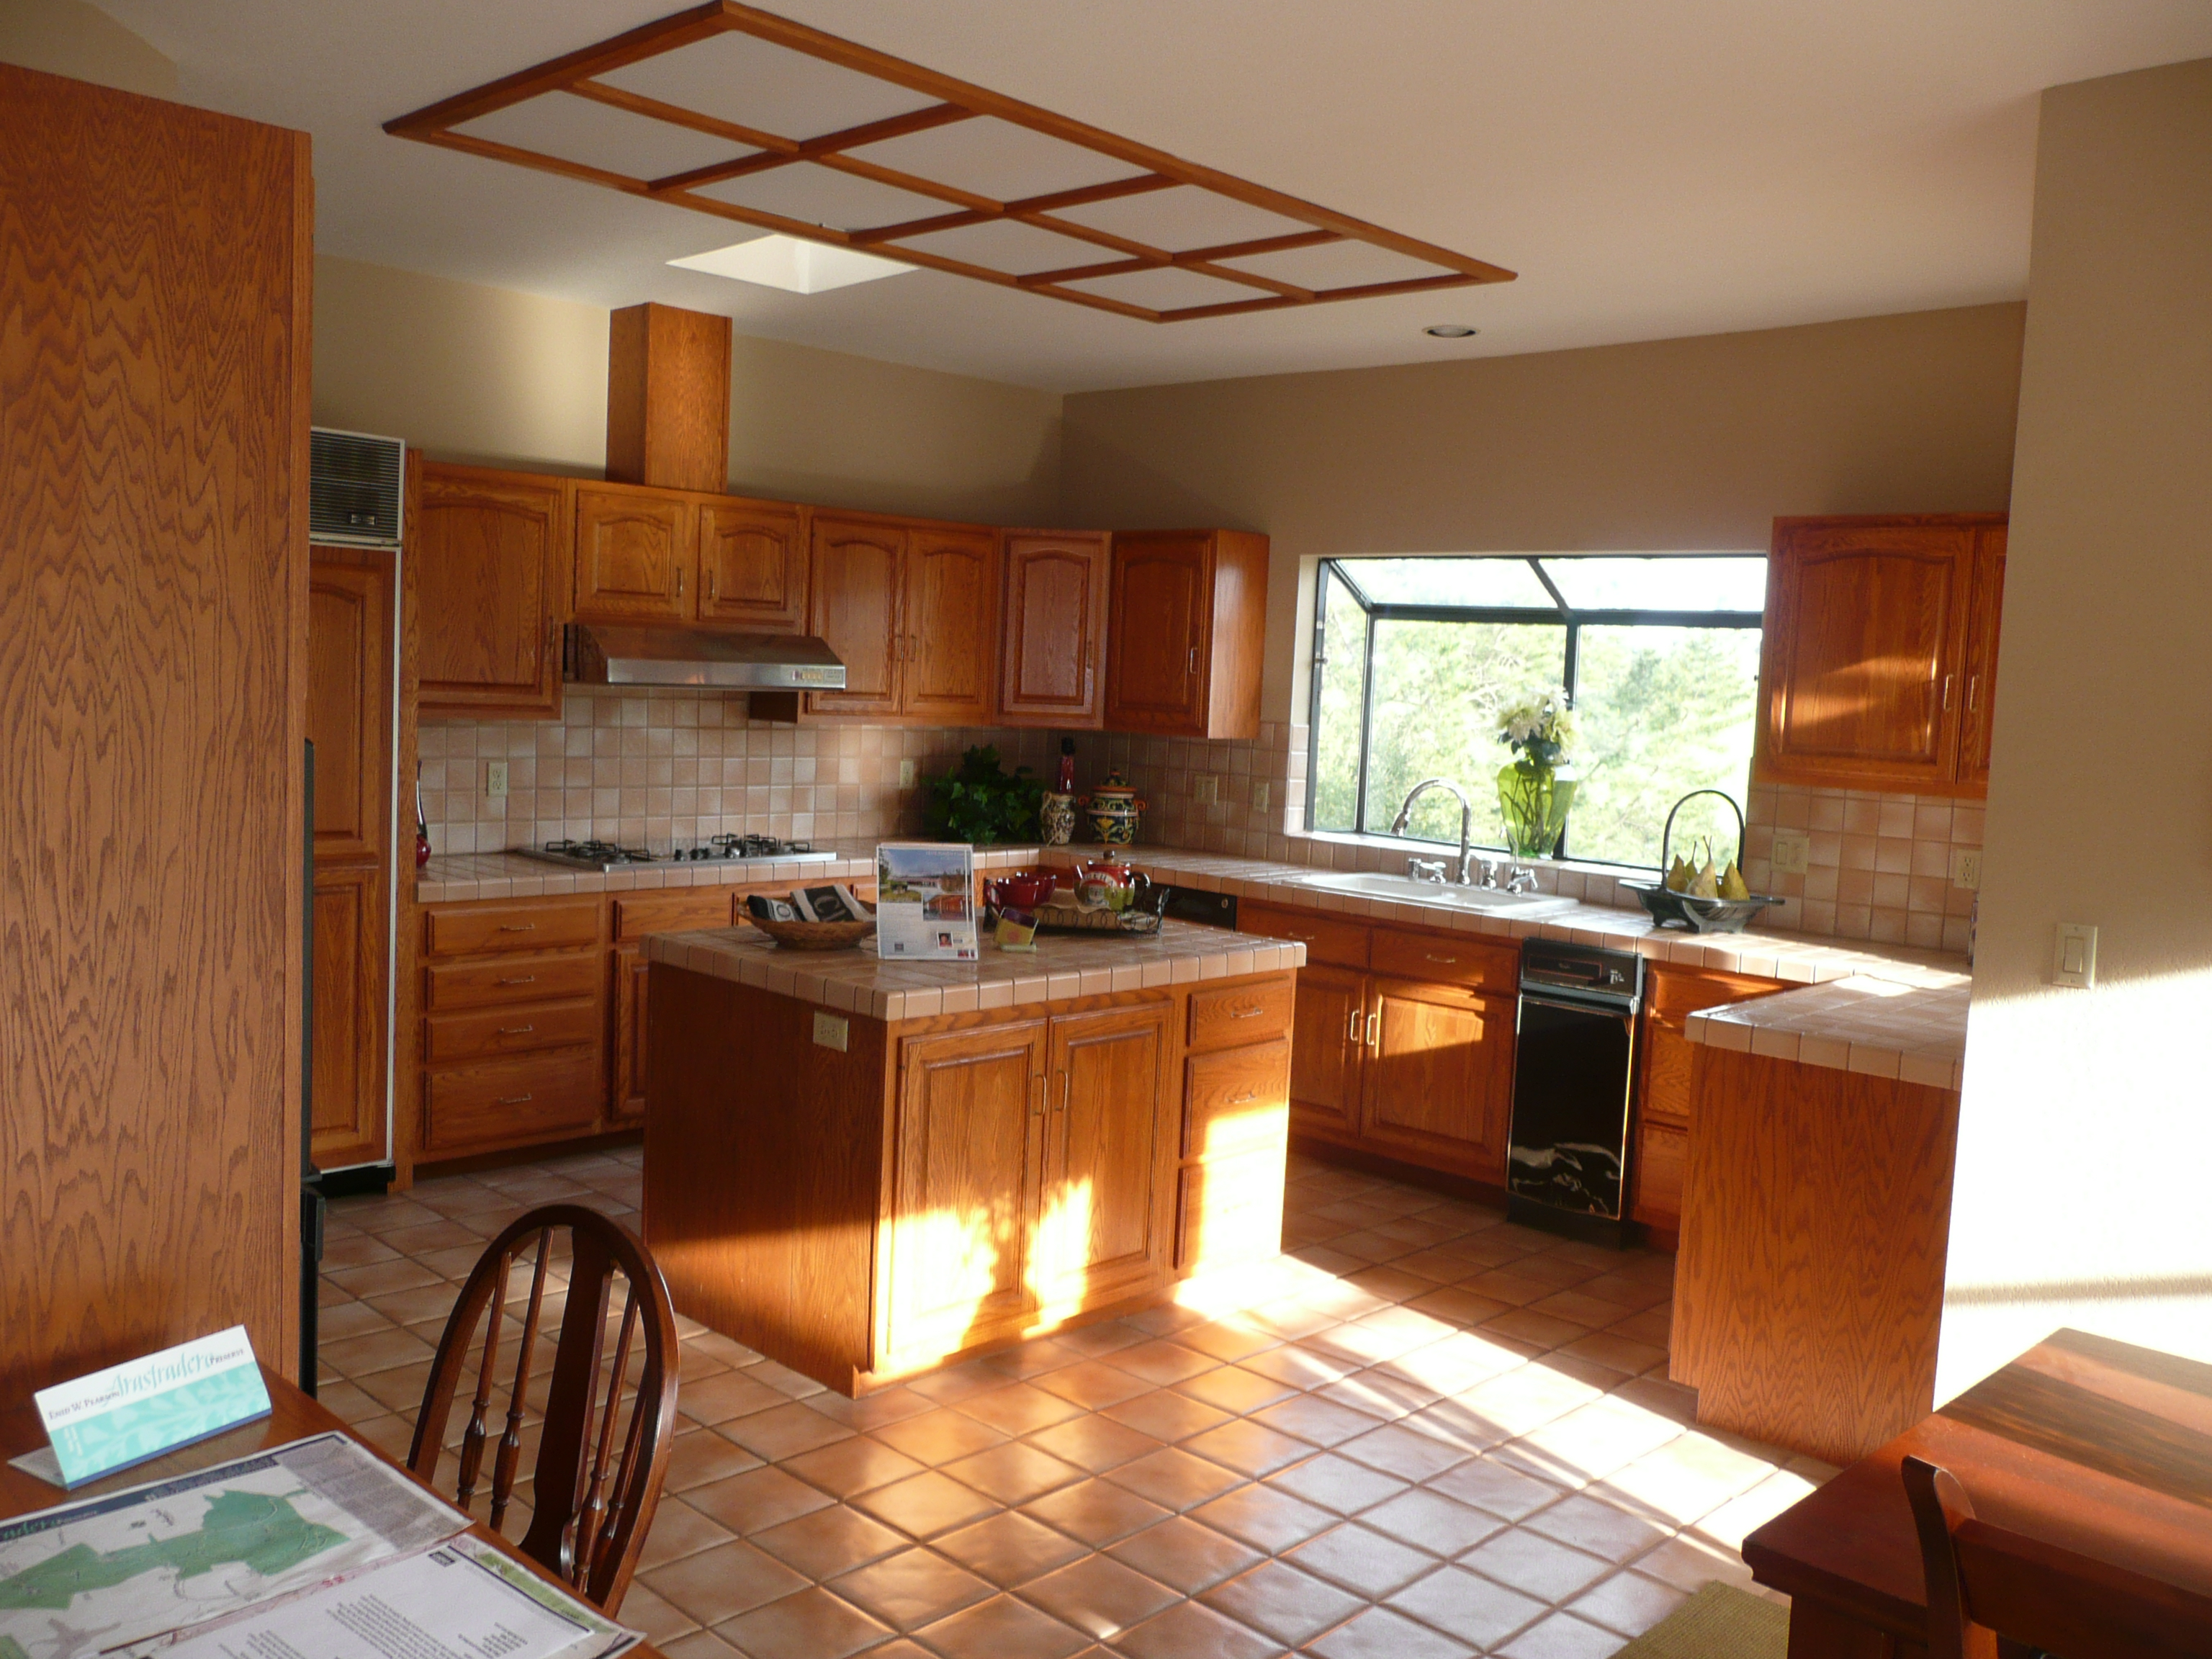 Kitchen With Feng Shui Kitchen Color And Sunlight